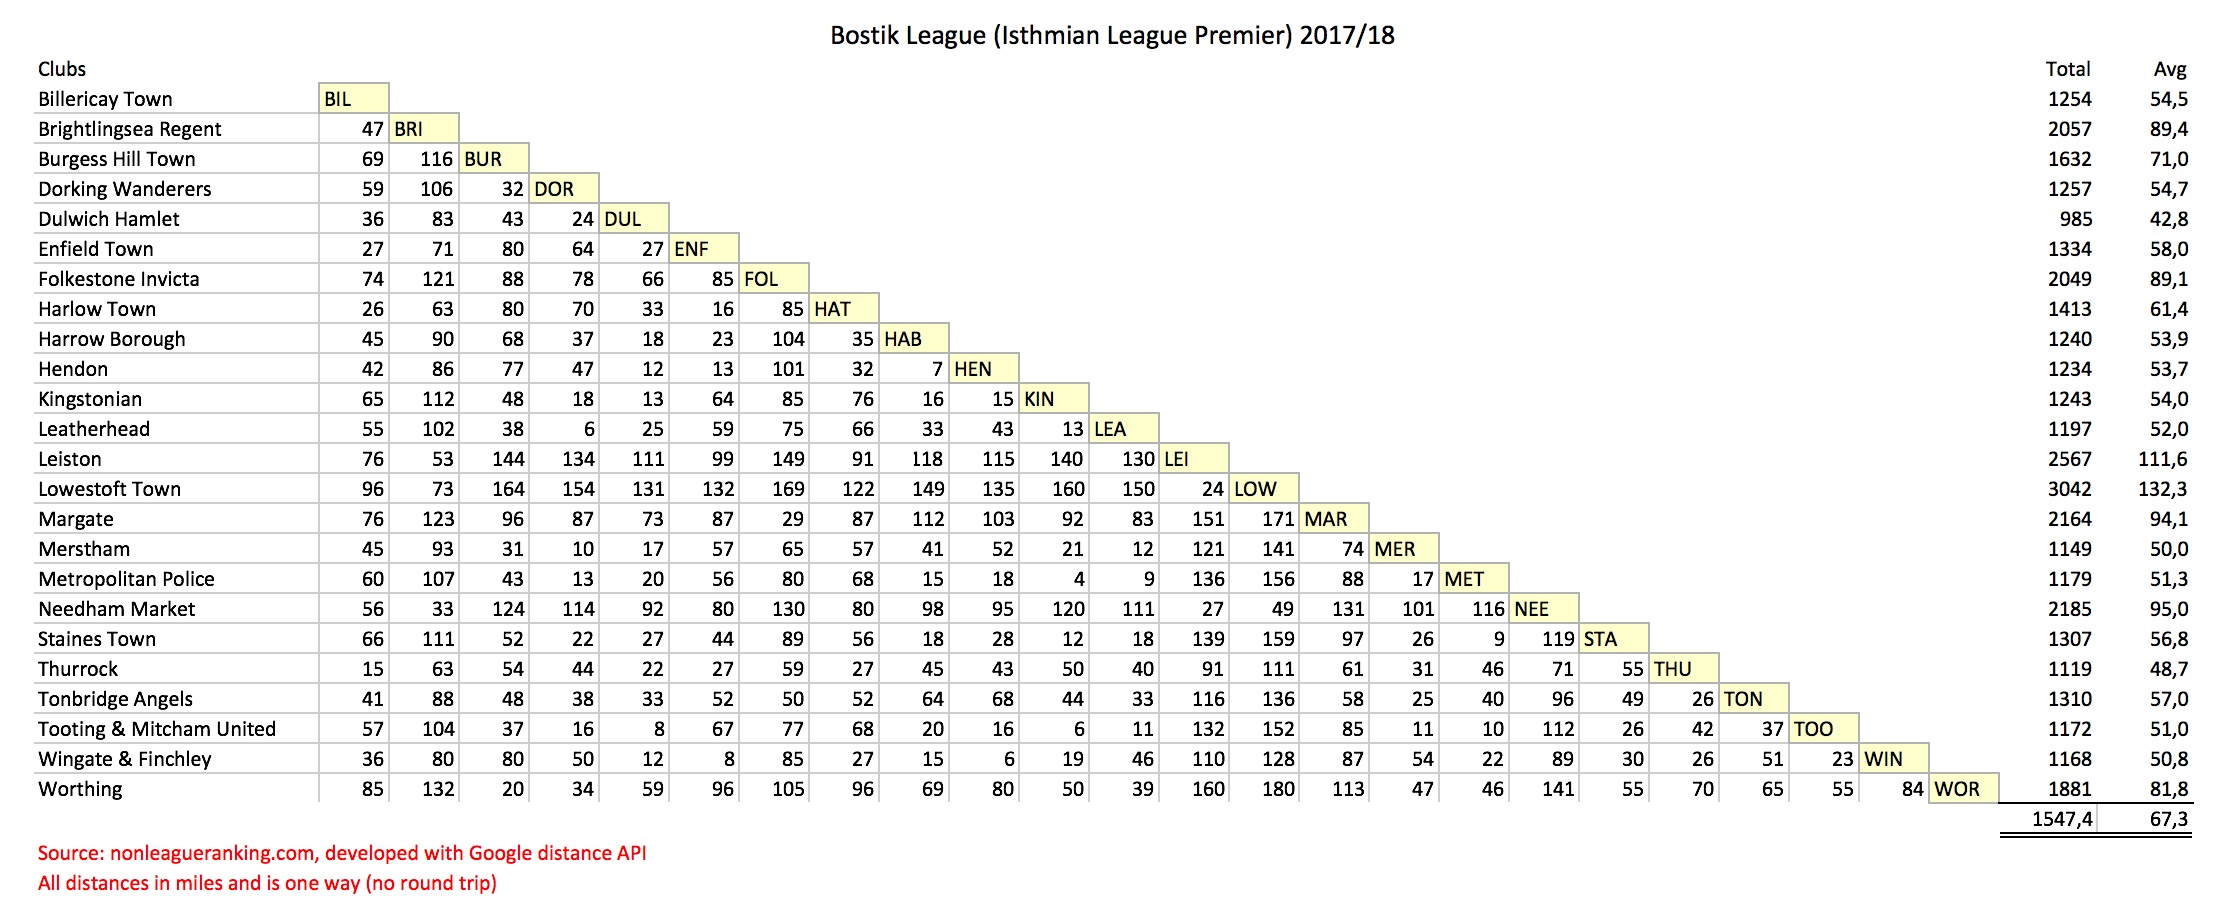 Bostik League 2017/18